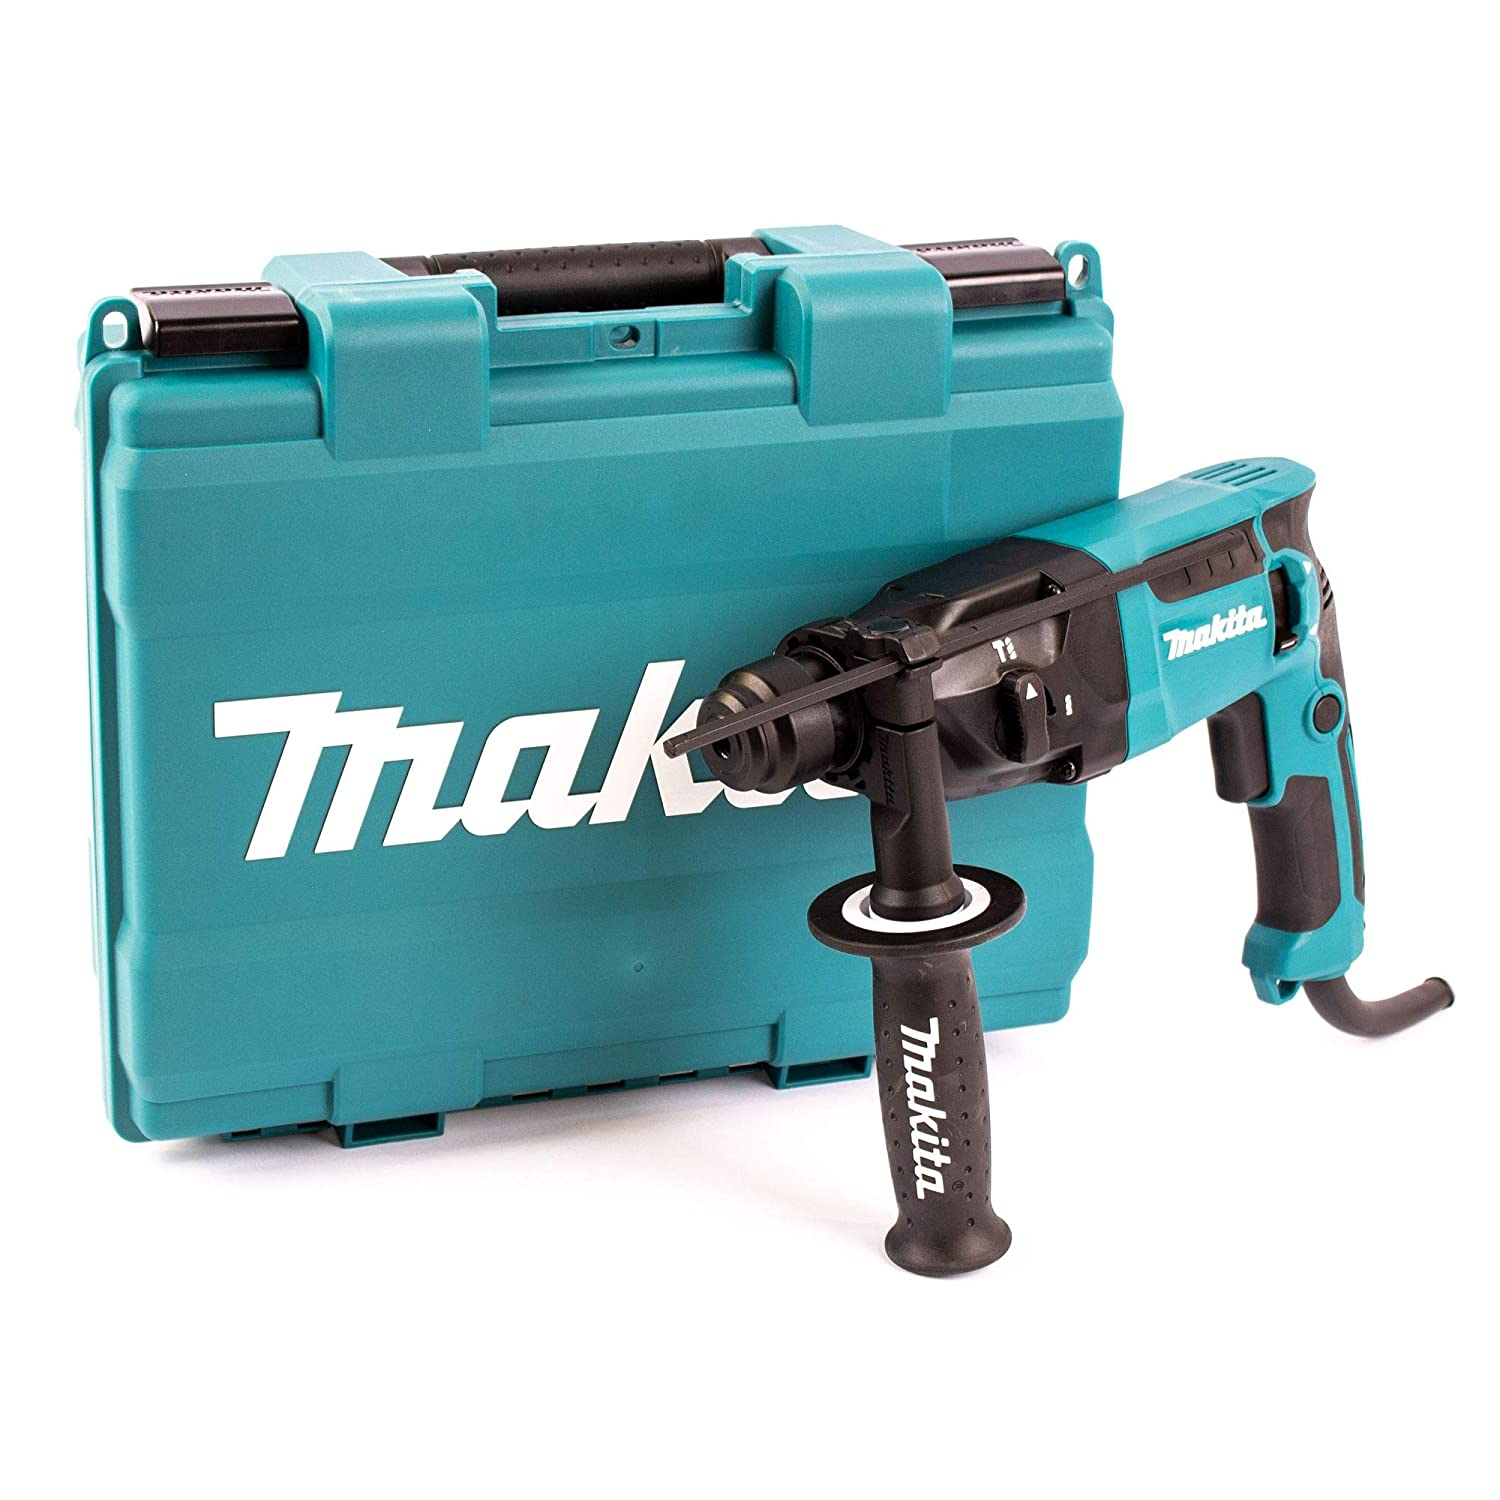 Makita HR1840/2 SDS Plus Rotary Hammer, 470 W, 240 V, Blue, 18 mm Makita UK